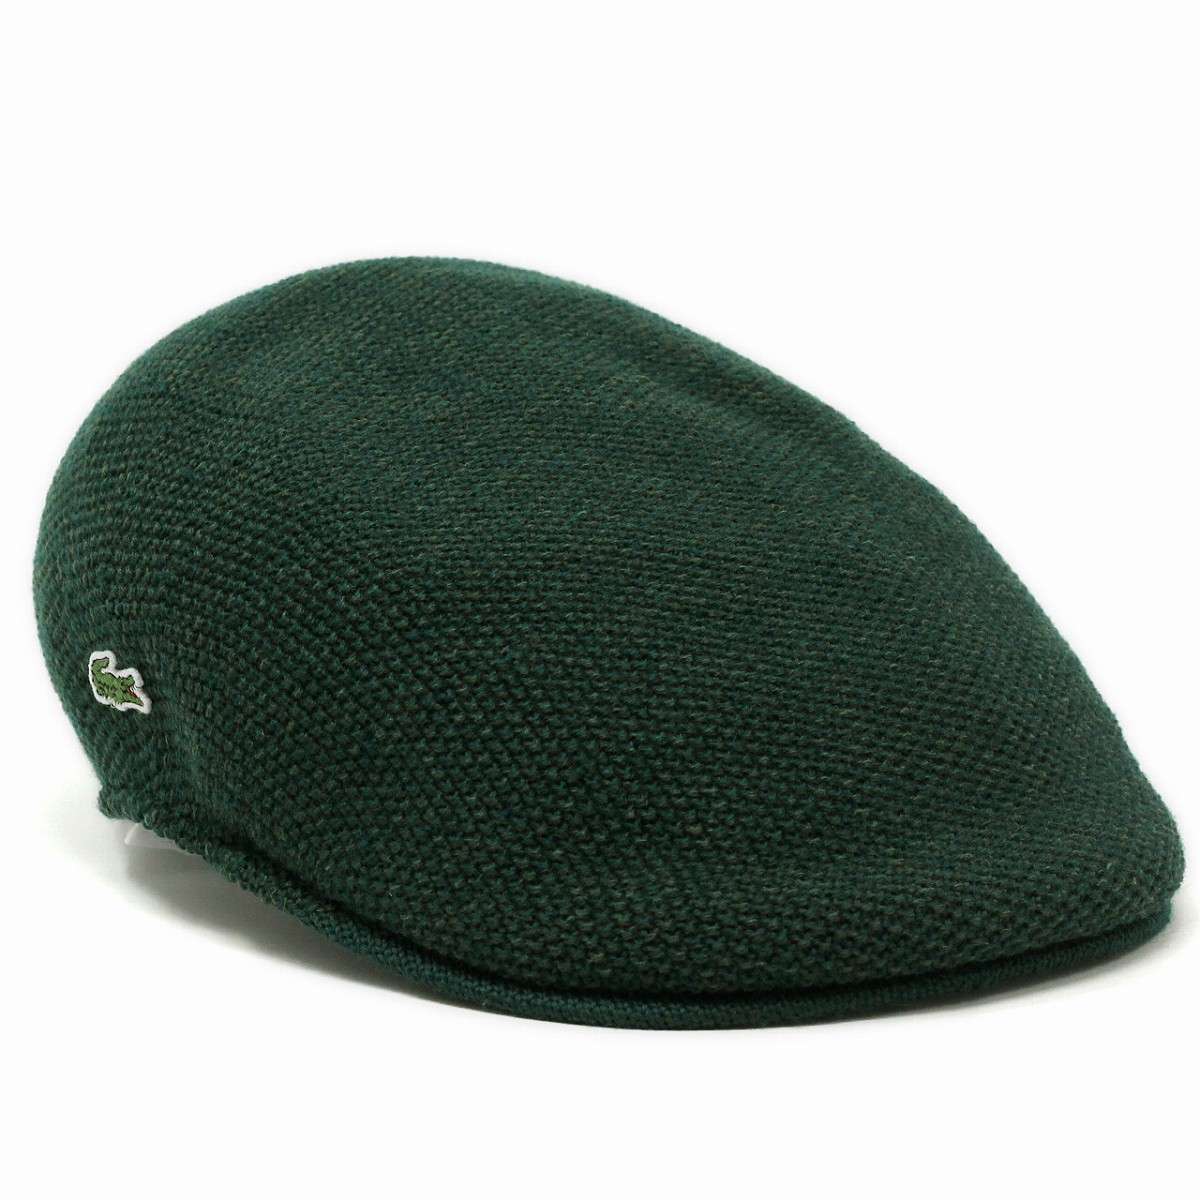 Hunting Hat Mens LACOSTE Ladies Lacoste Fall Winter Knit